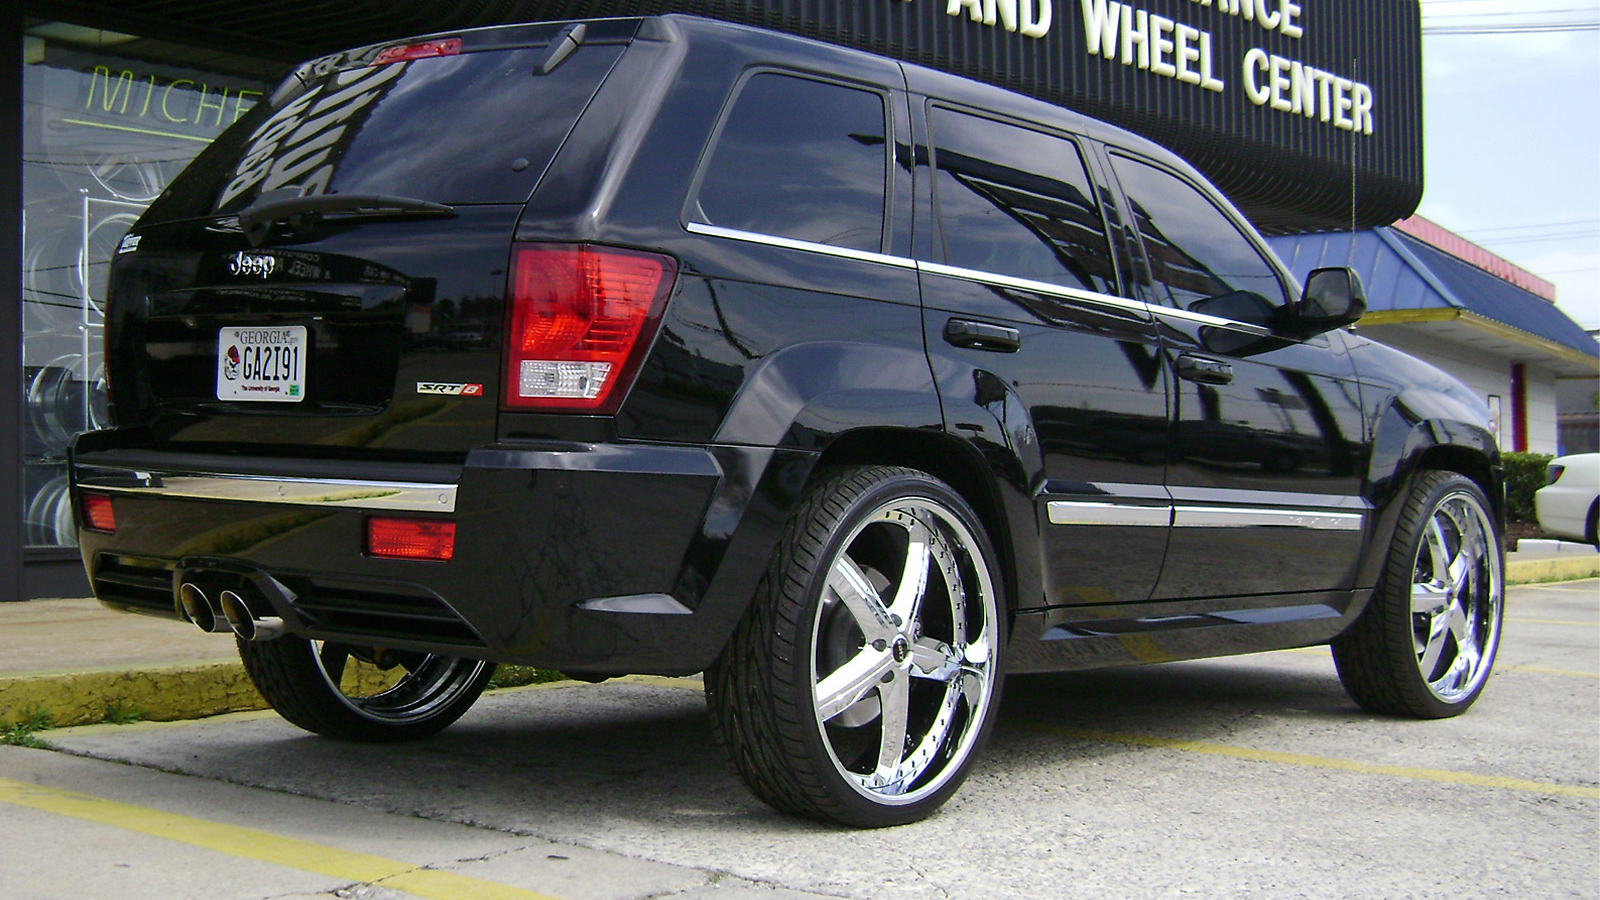 jeep srt8 montage gallery - mht wheels inc.